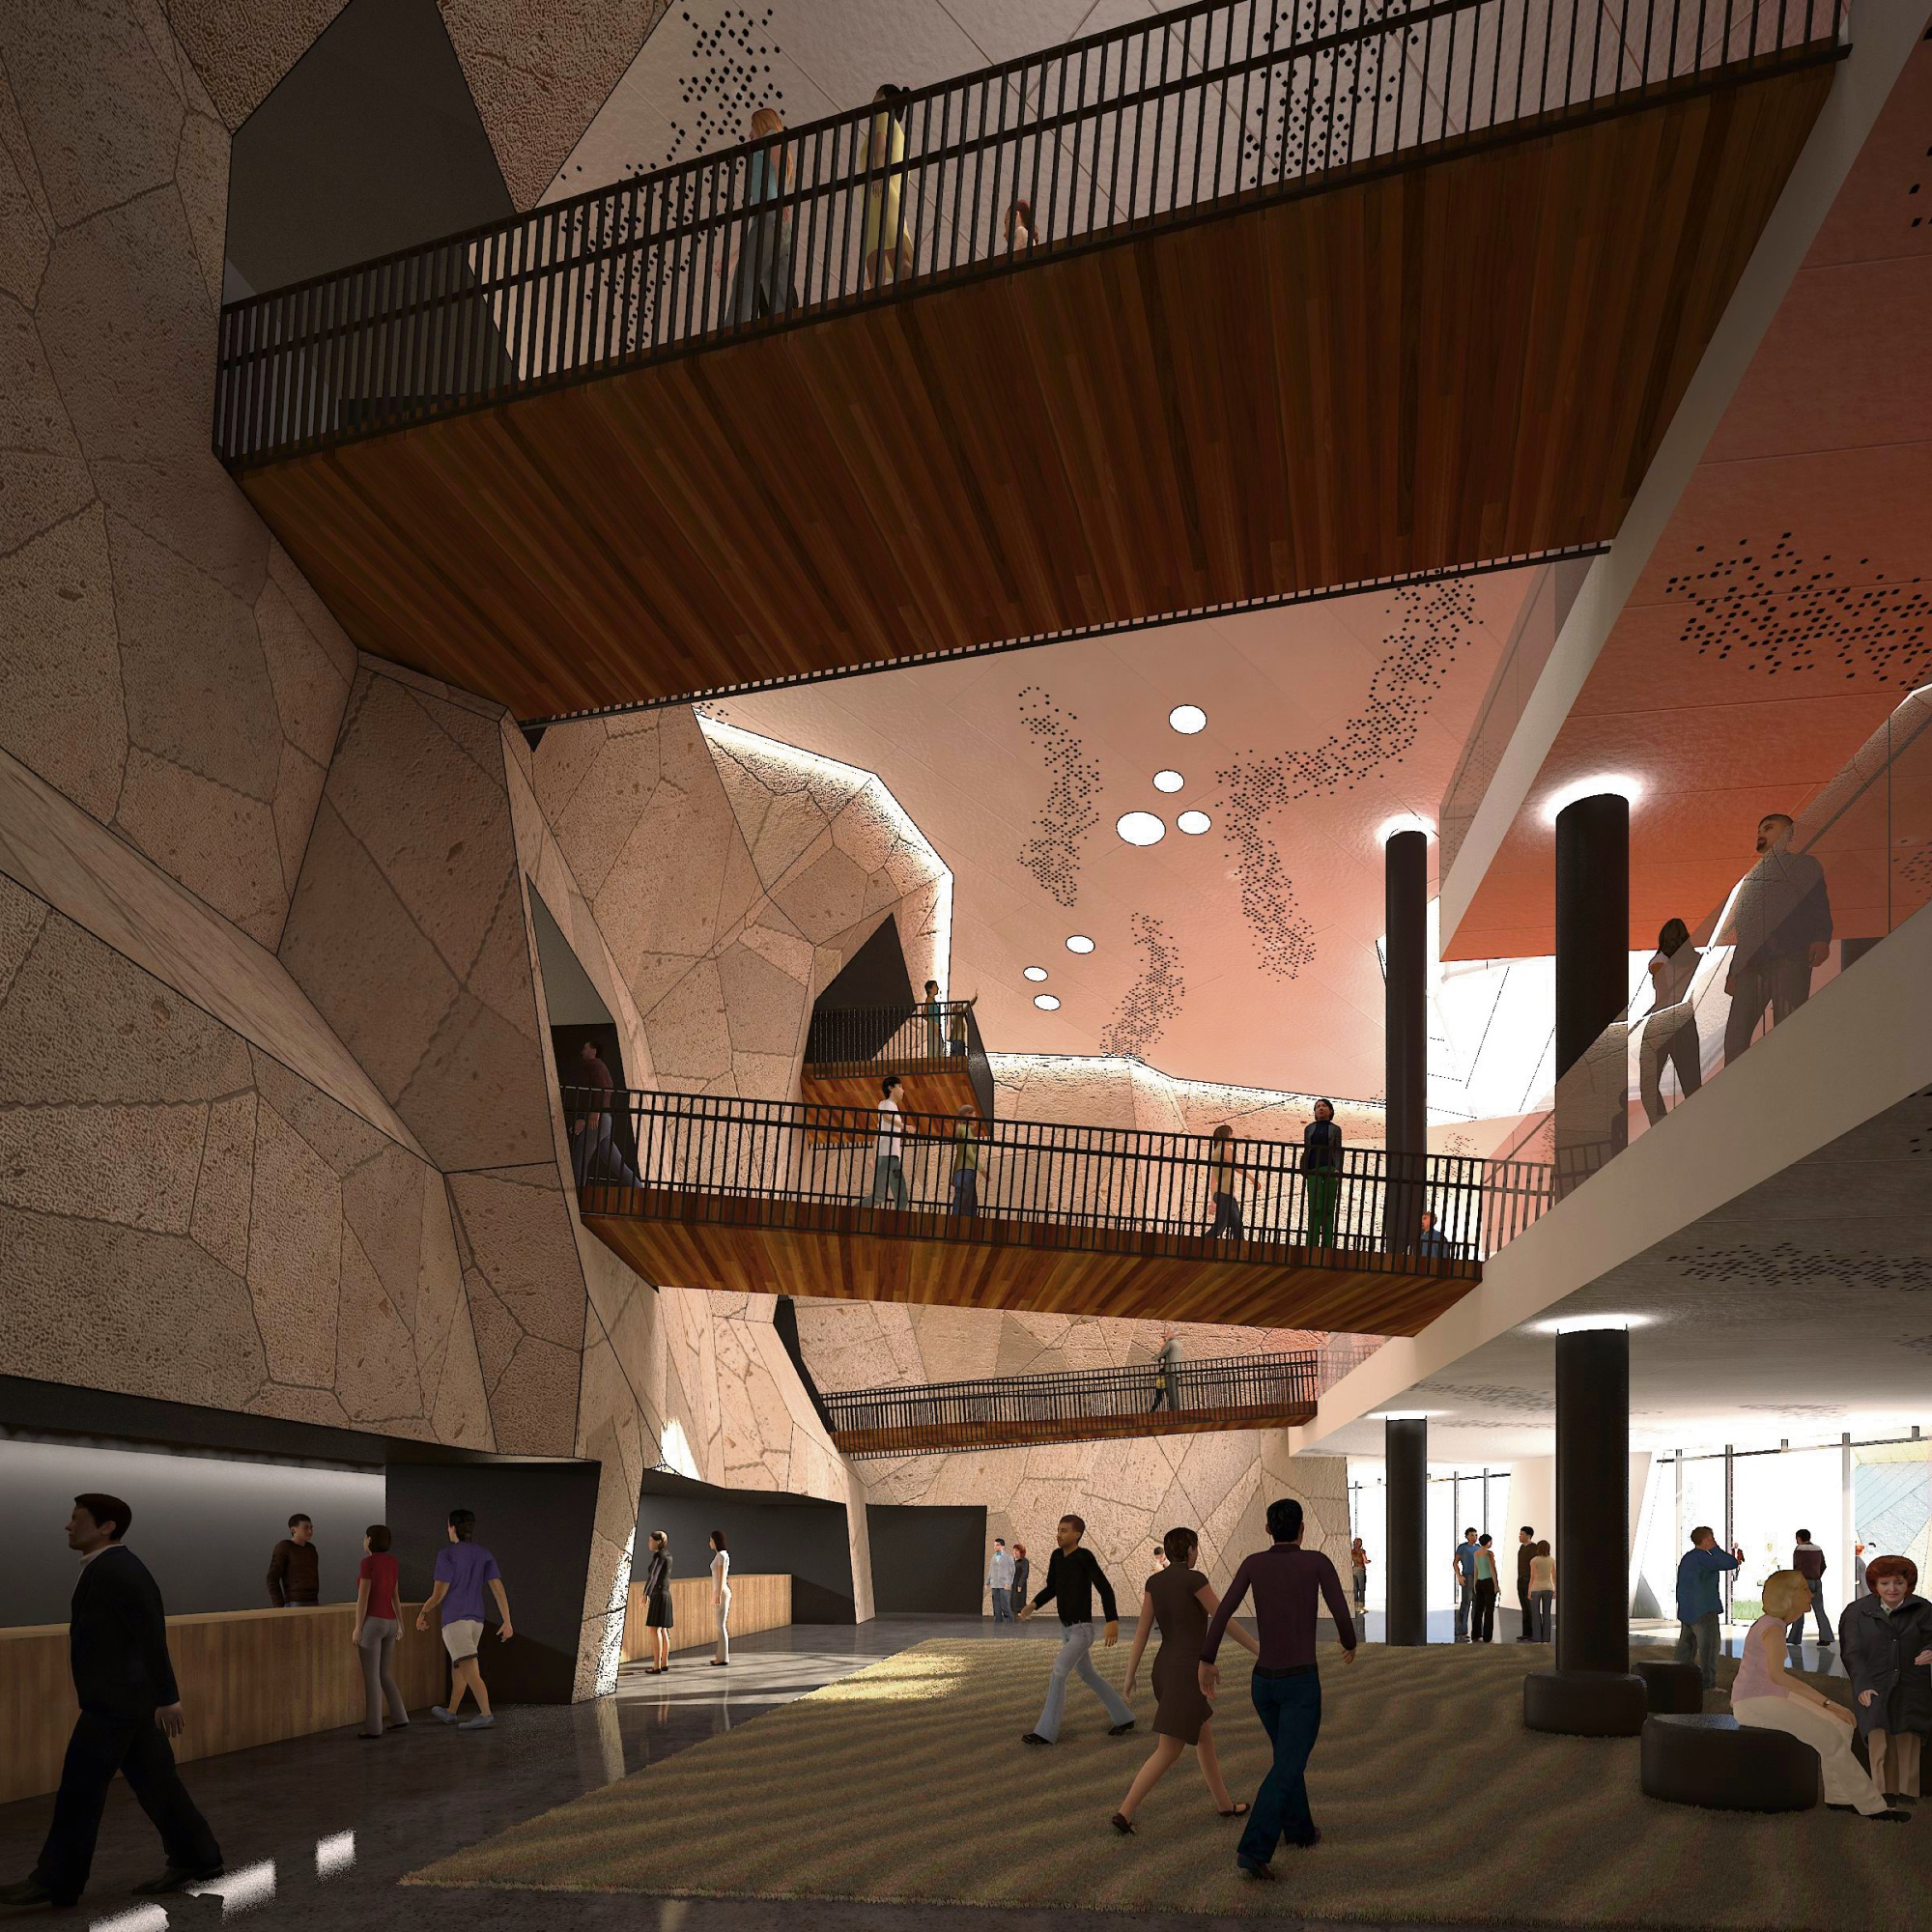 An artist's impression of inside the proposed Joondalup performing arts centre.